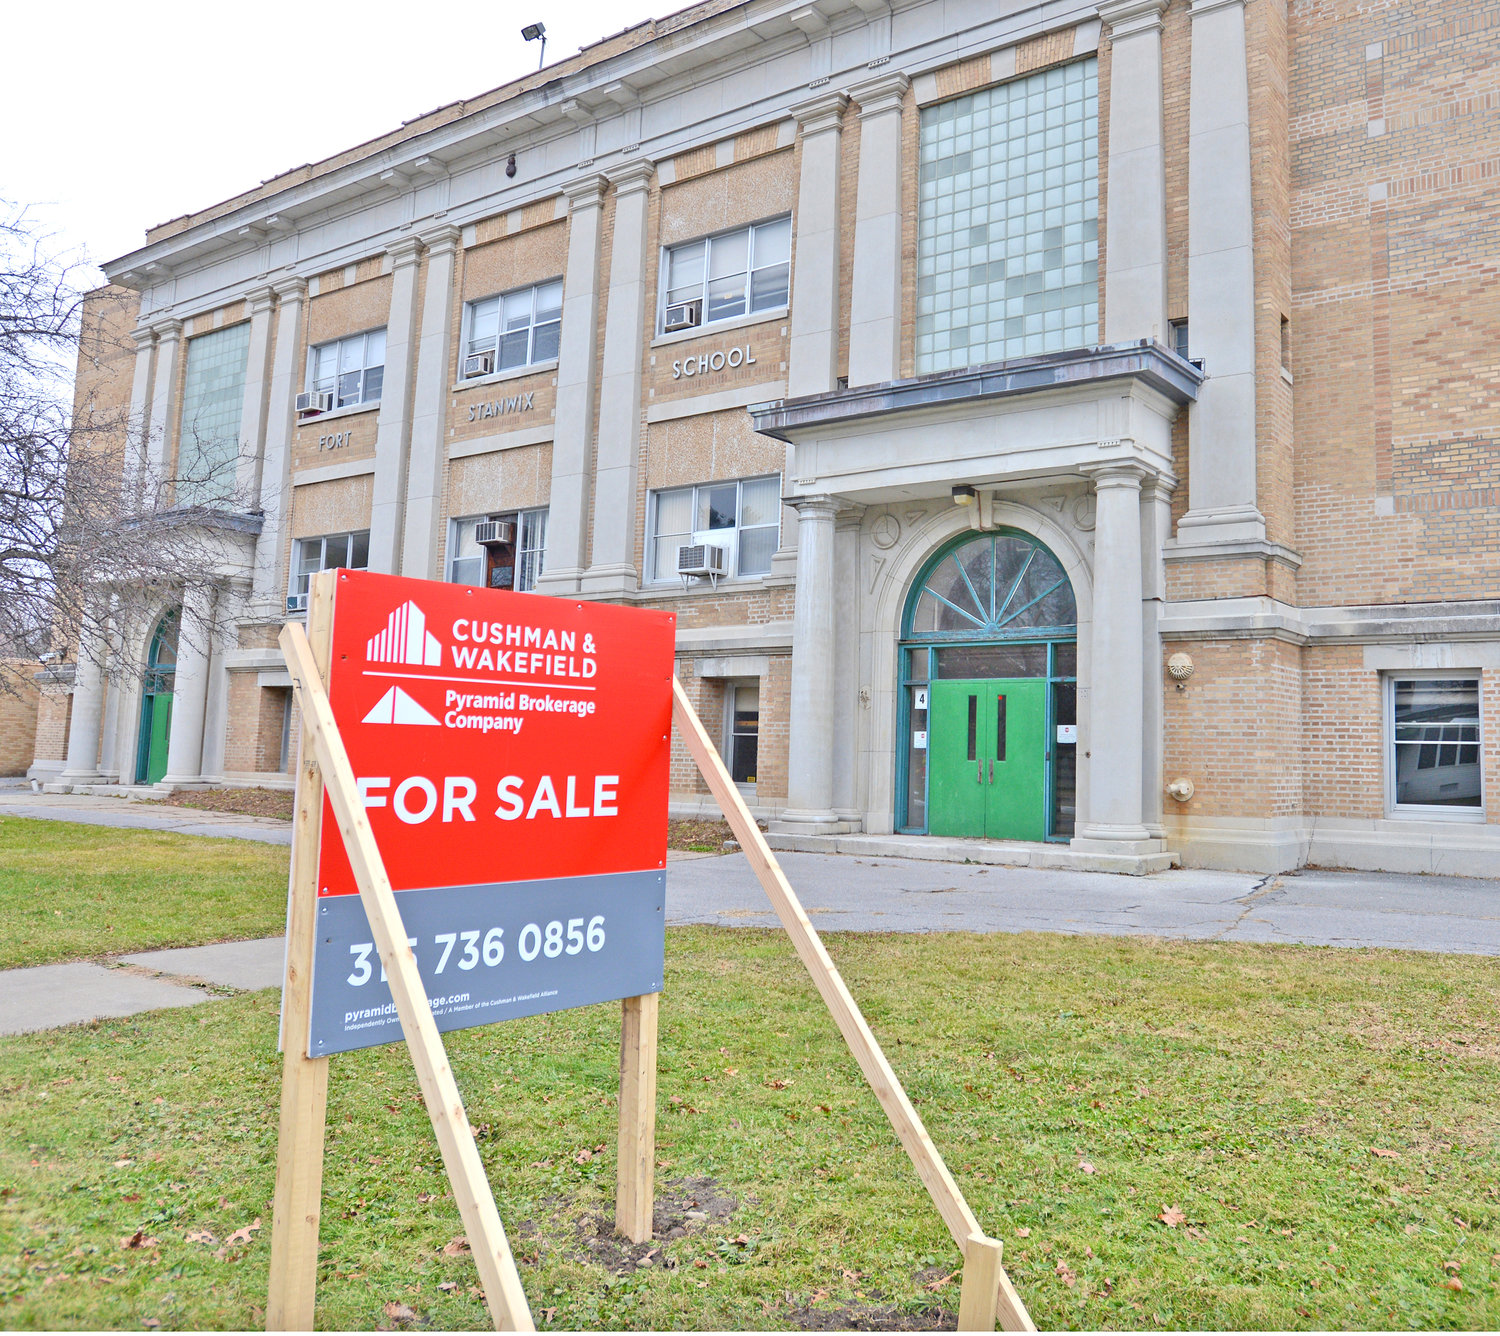 NEIGHBORS EYE PROCESS — Neighbors of the former Fort Stanwix Elementary School, 110 Linden St., are airing concerns over the future of the building, which is slated to turned into an apartment complex for seniors.